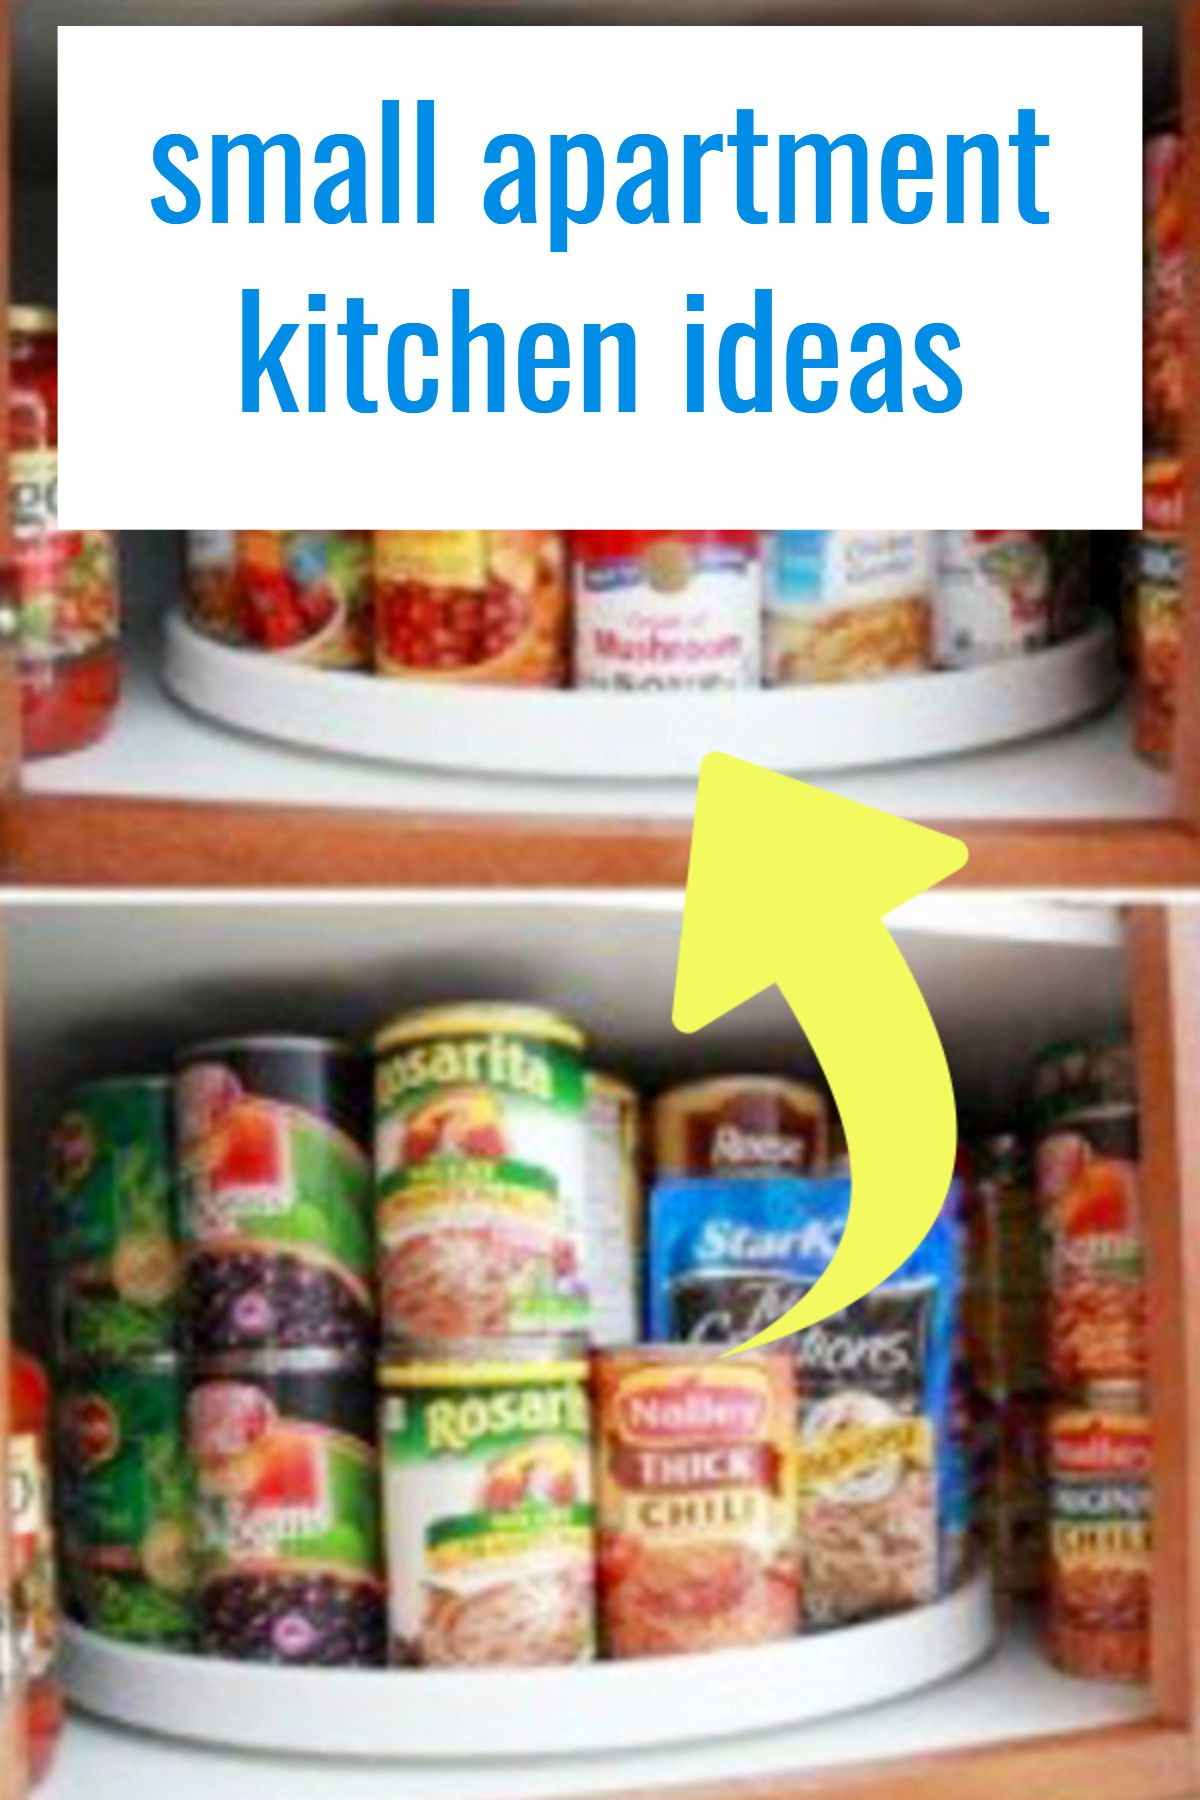 Small Apartment Kitchen Storage Ideas That Won't Risk Your Deposit images